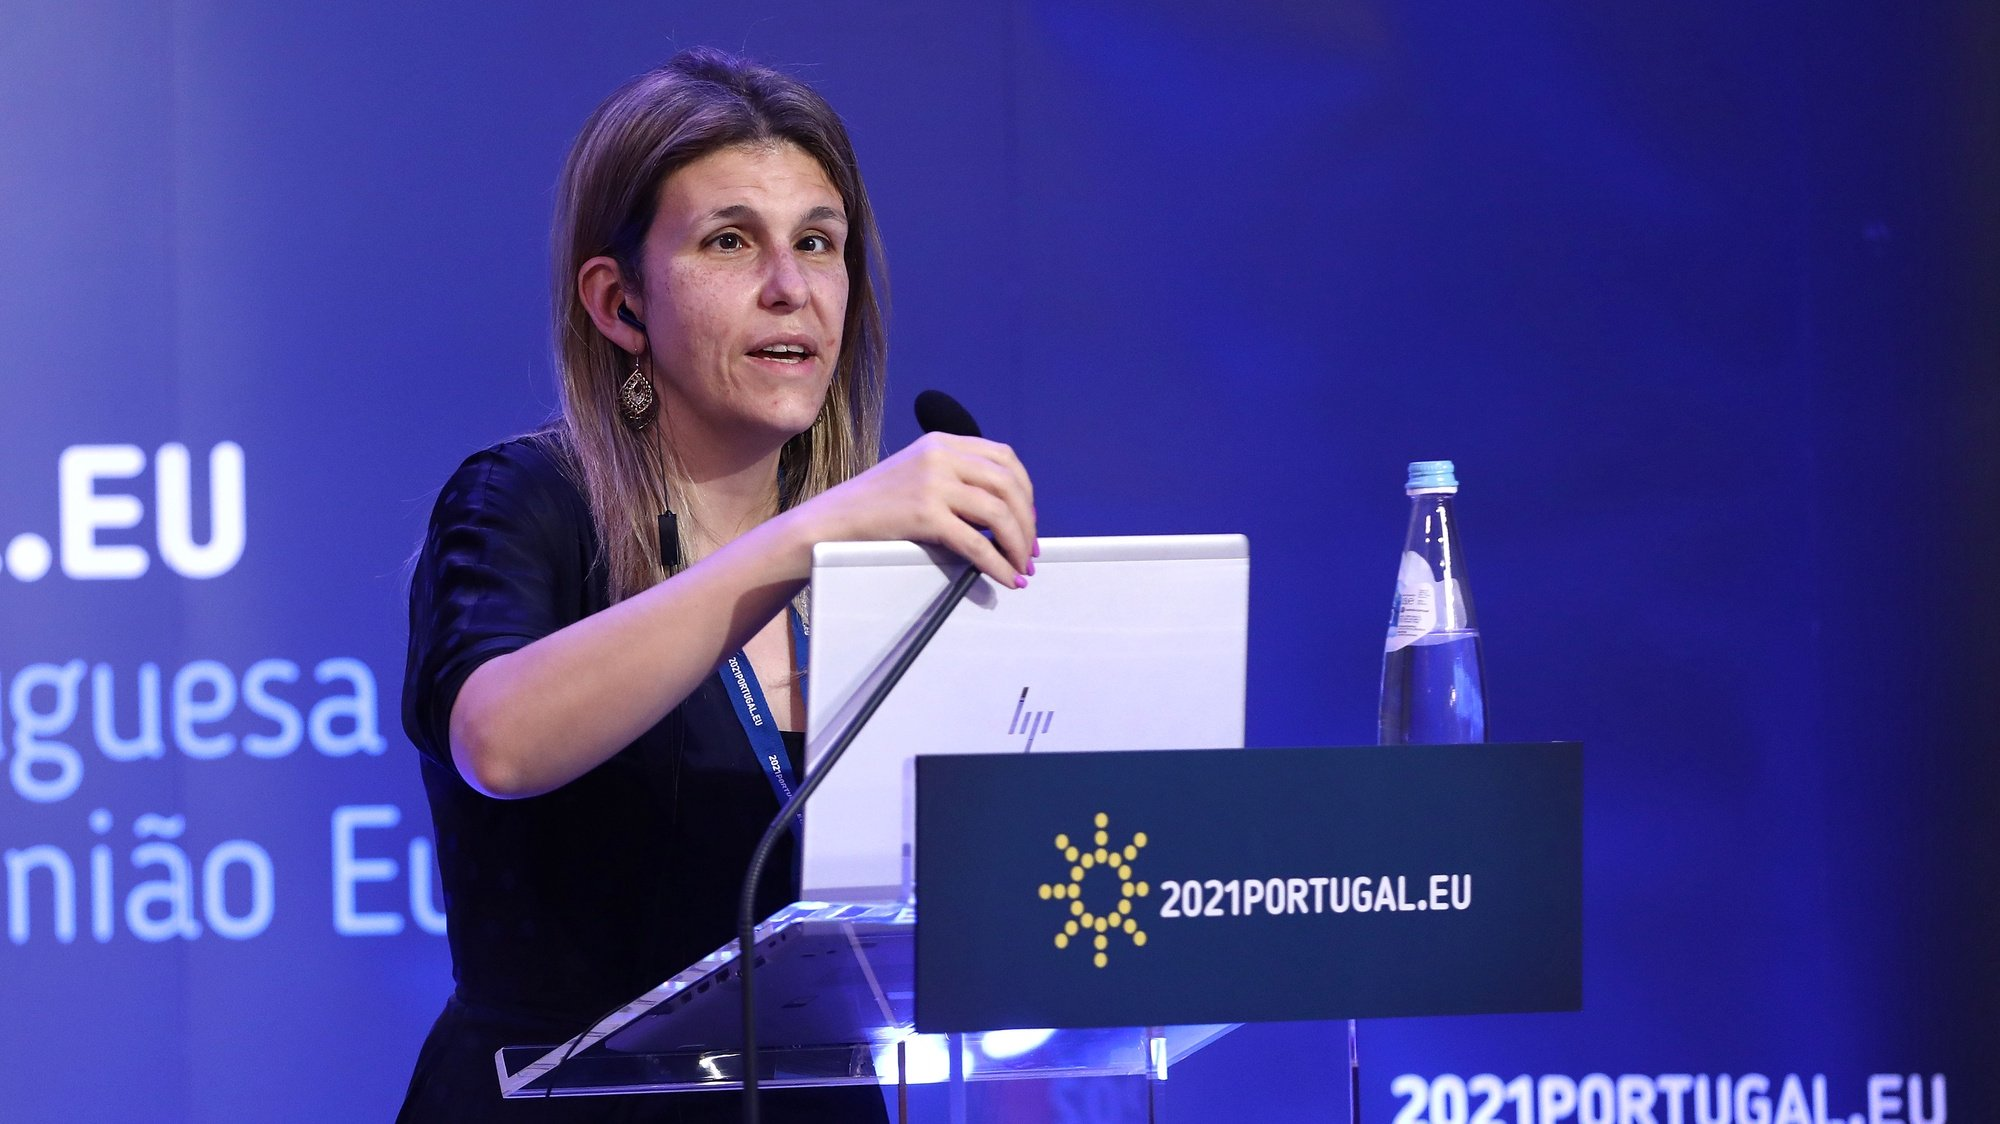 Portuguese Secretary of State for the Inclusion of Persons with Disabilities, Ana Sofia Antunes, attends an high-level video conference on the European Strategy on the Rights of Persons with Disabilities 2021-2030 under the Portuguese Presidency of the European Council, in Lisbon, Portugal, 19 April 2021. Based on the new strategy on the rights of persons with disabilities, the discussion will pay particular attention to essential areas that affect the daily lives of people with disabilities, such as accessibility, independent life, deinstitutionalisation, community-based and person-centred social services, employment and inclusive education. ANTONIO PEDRO SANTOS/LUSA